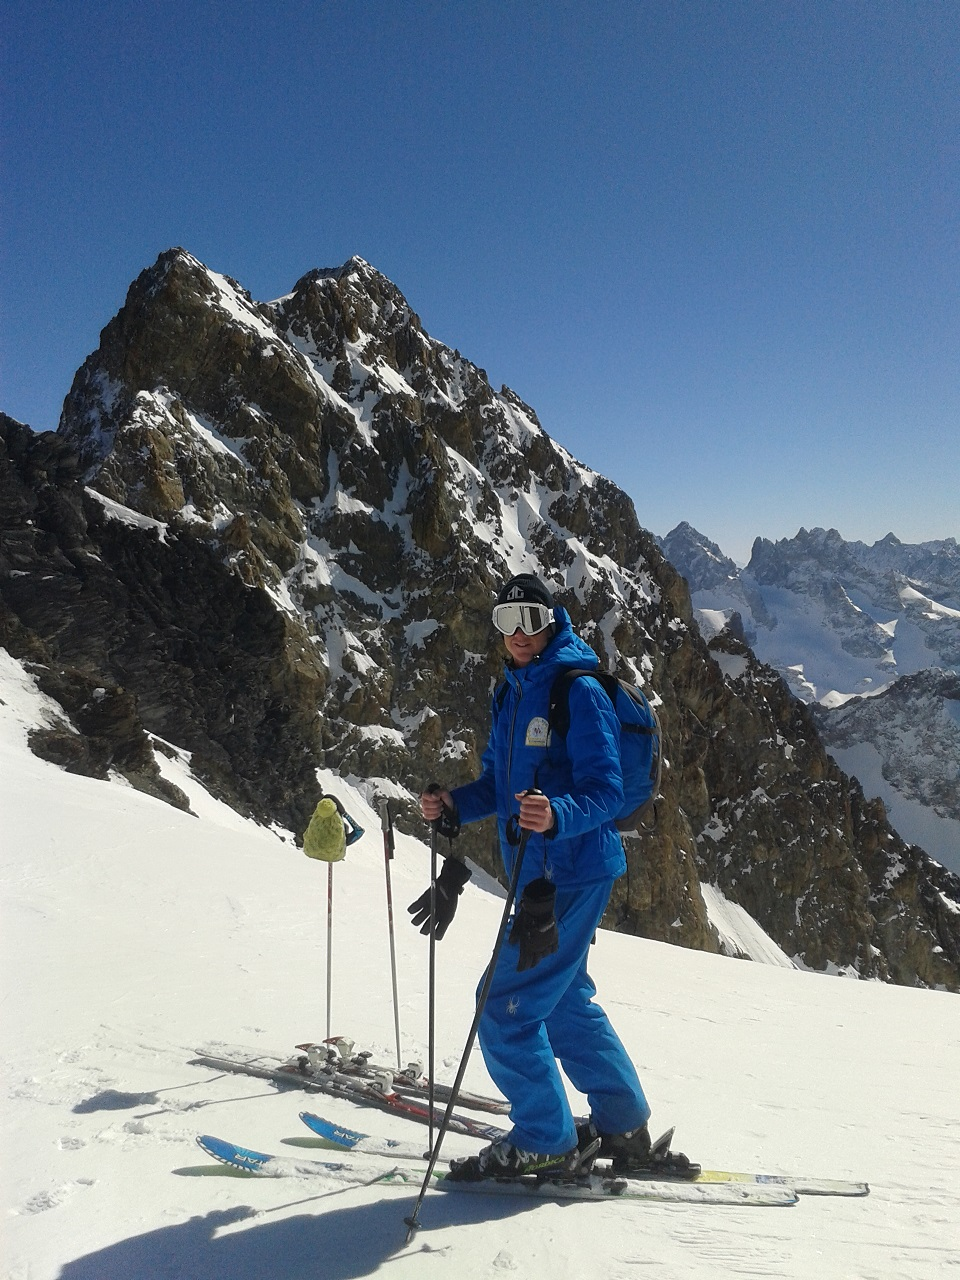 In front of Pic de la Grave